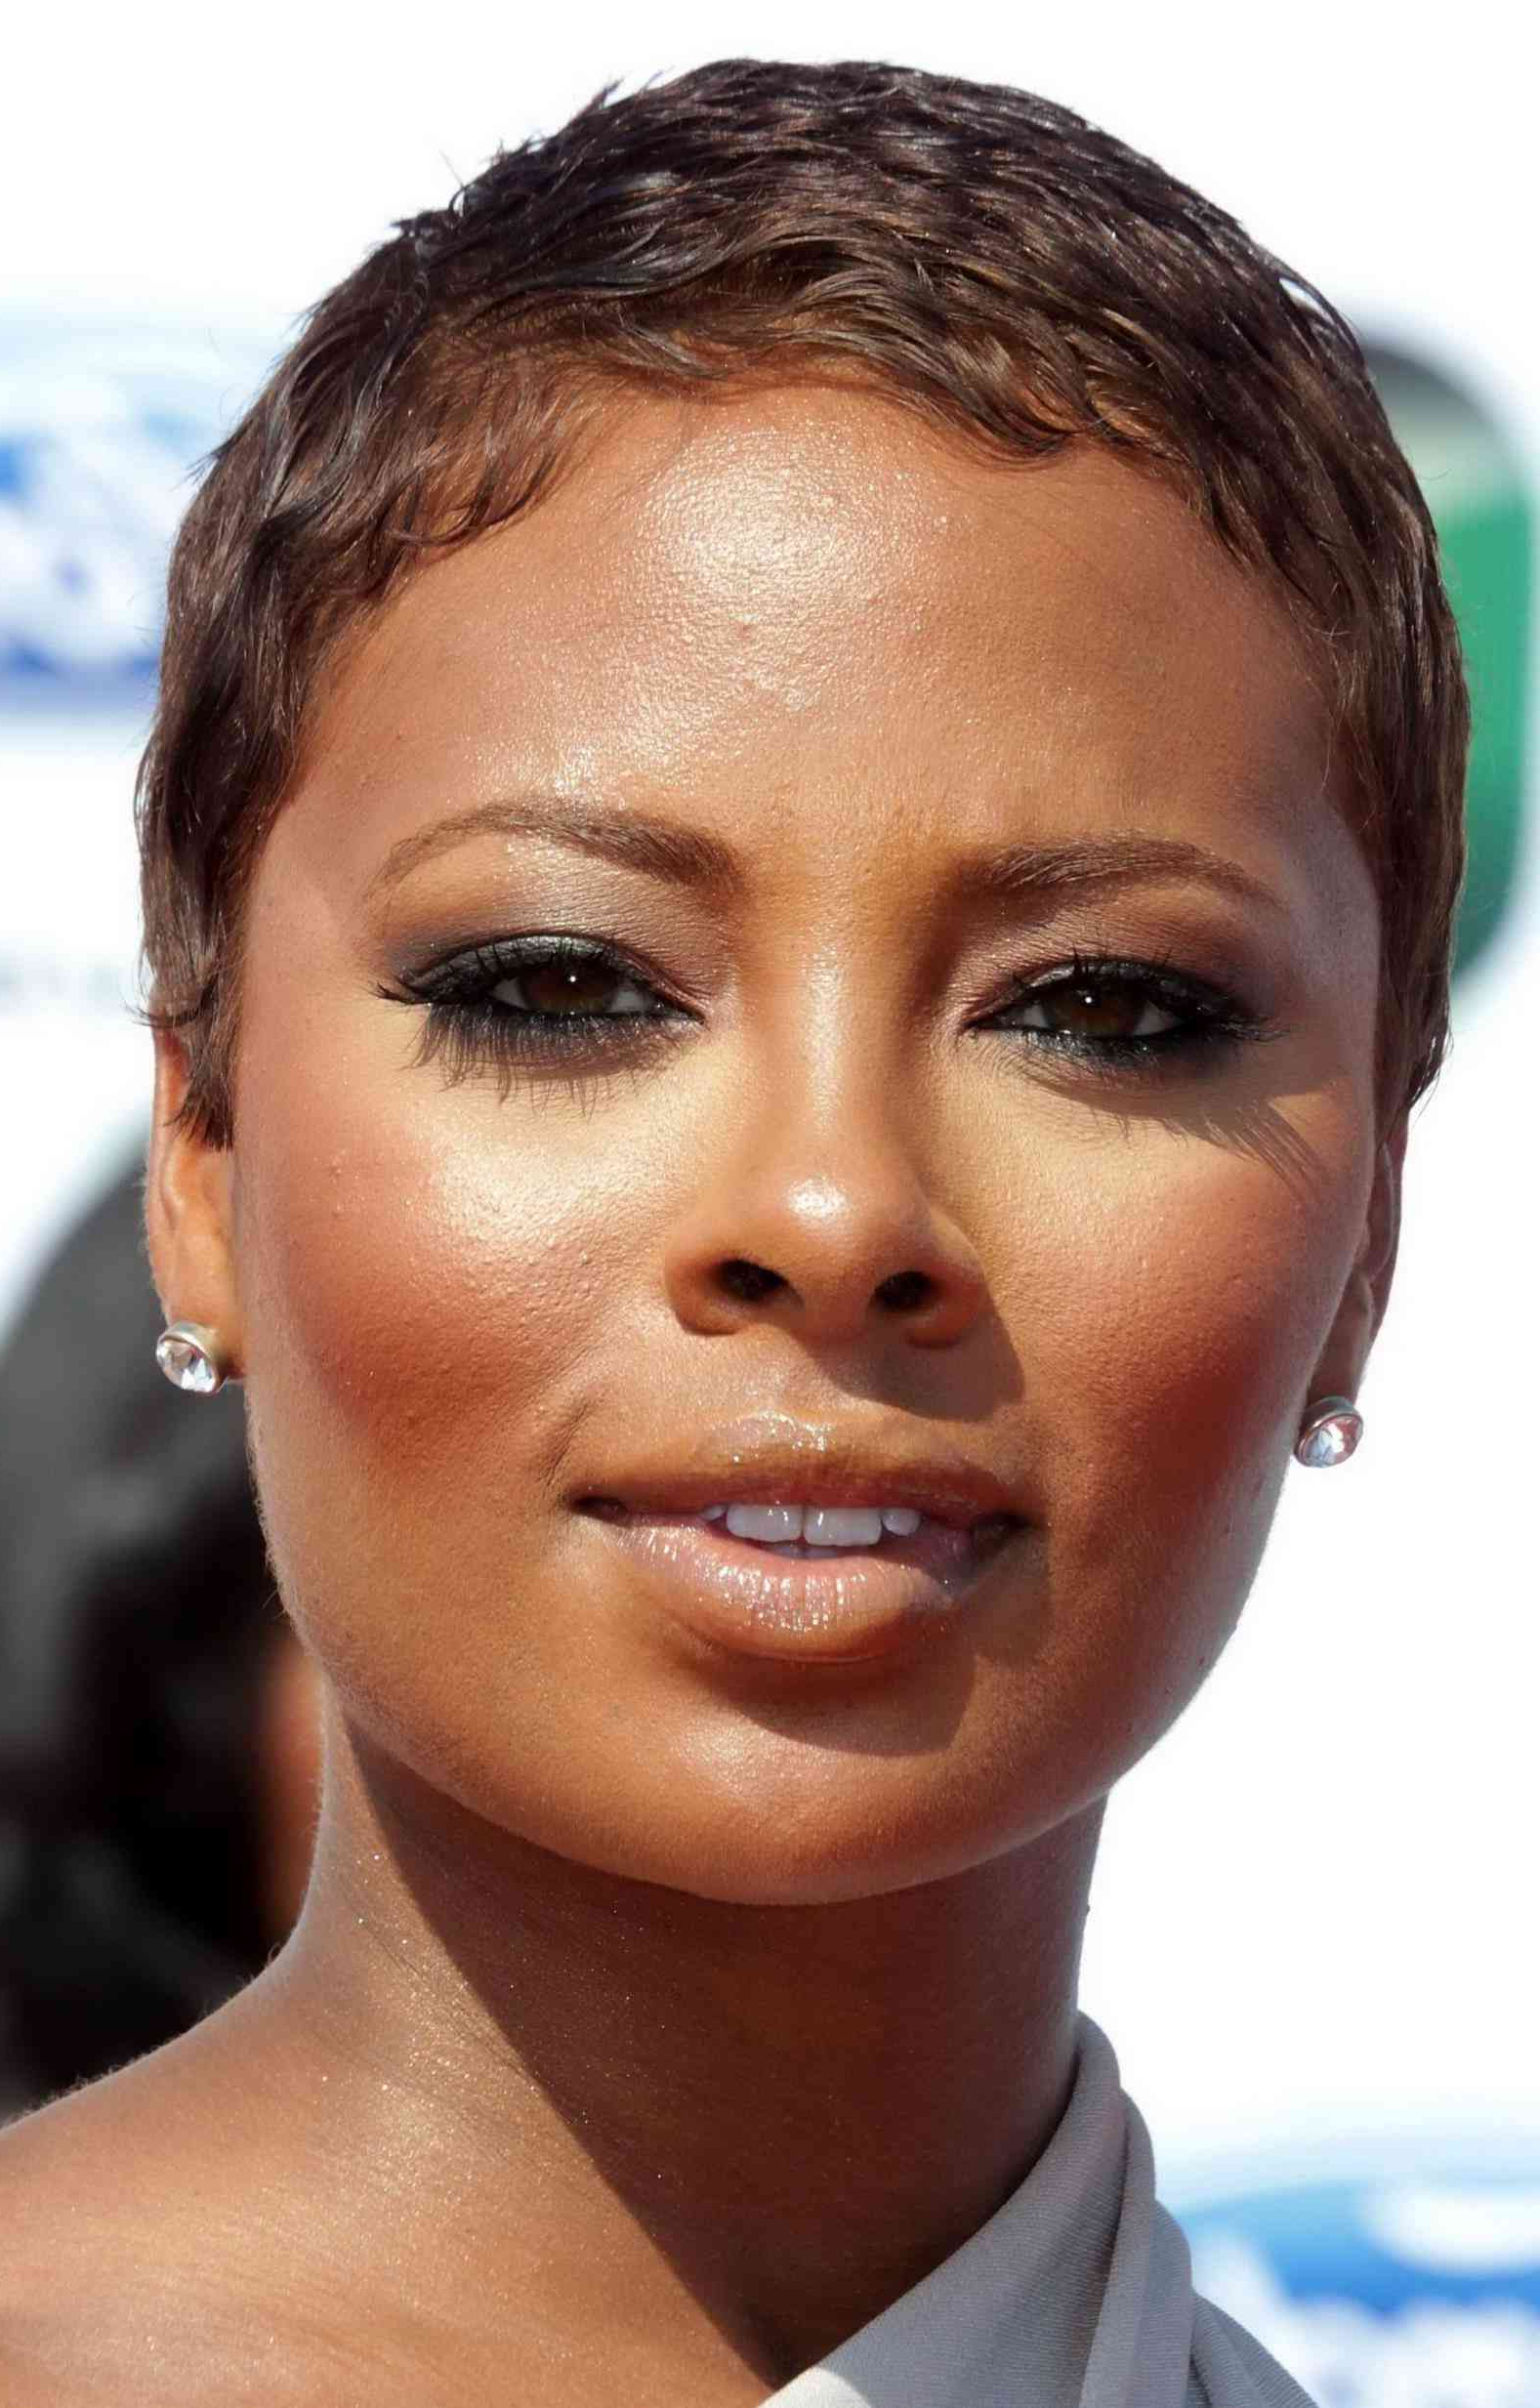 Short Hairstyles For Round Faces Black Ladies Hairstyles And Cuts With Regard To Short Haircuts For Round Faces African American (View 23 of 25)